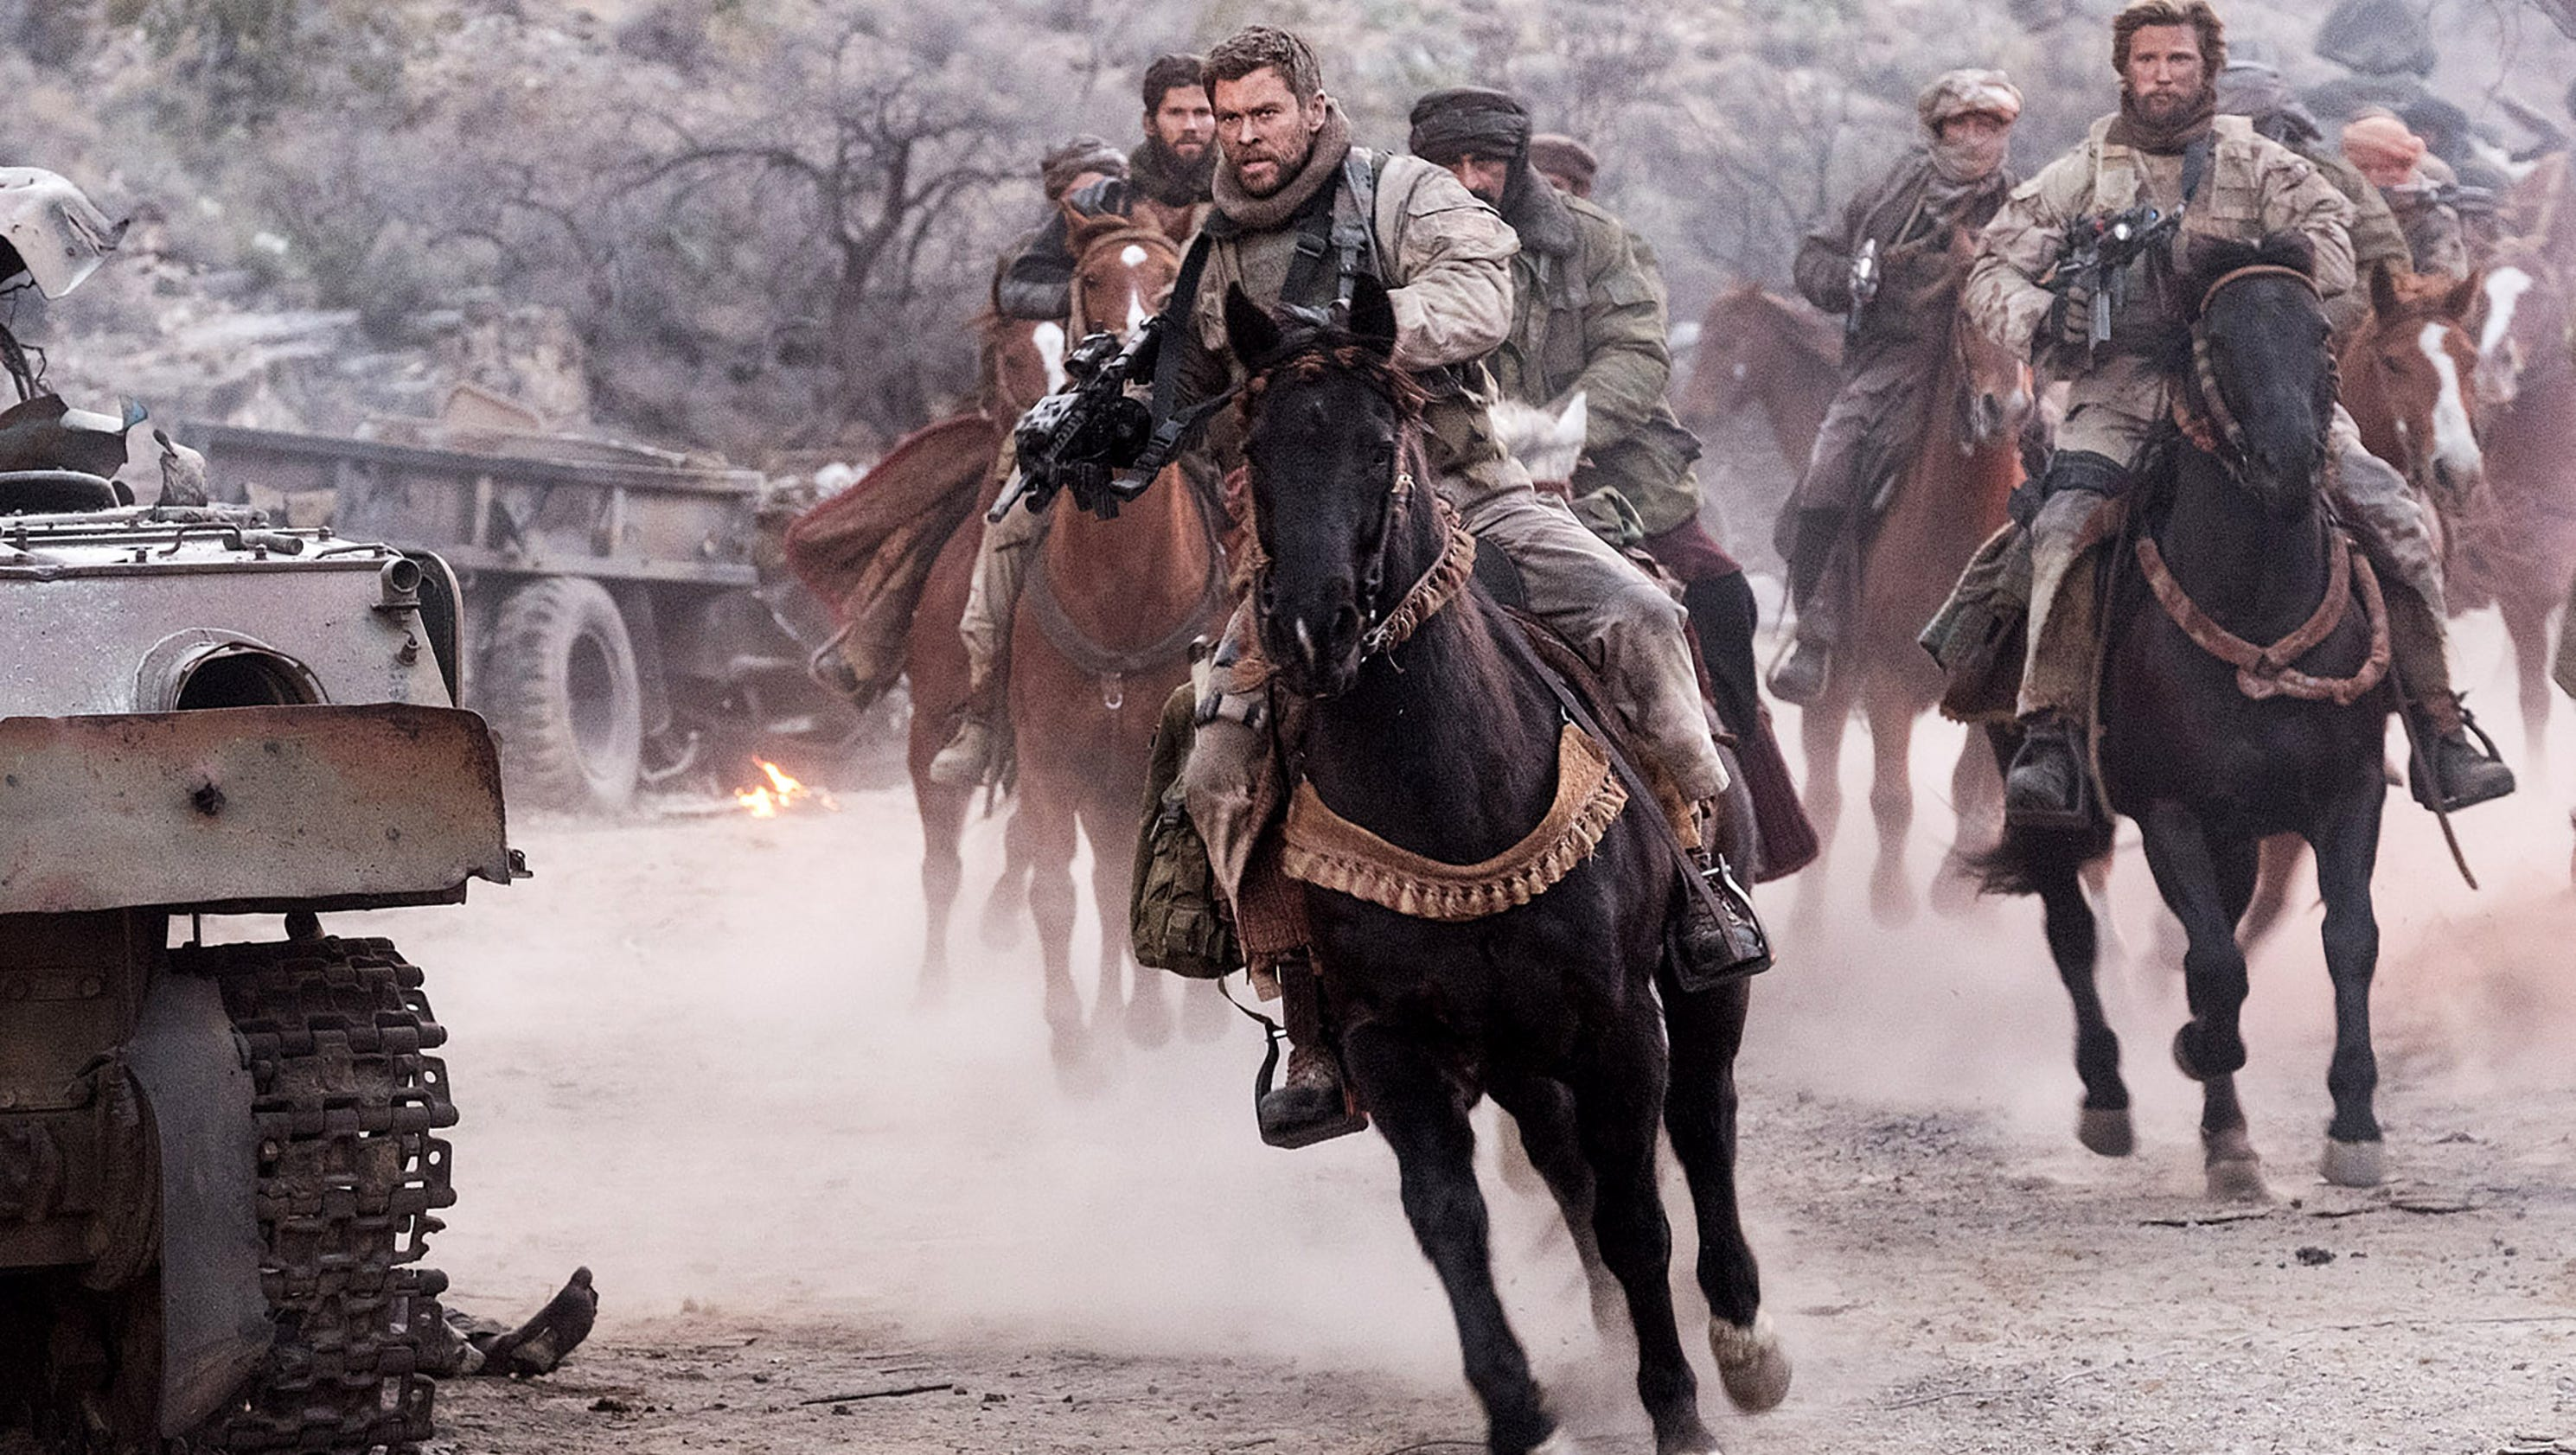 Chris Hemsworth reveals the out-of-control horse ride he started on '12 Strong'